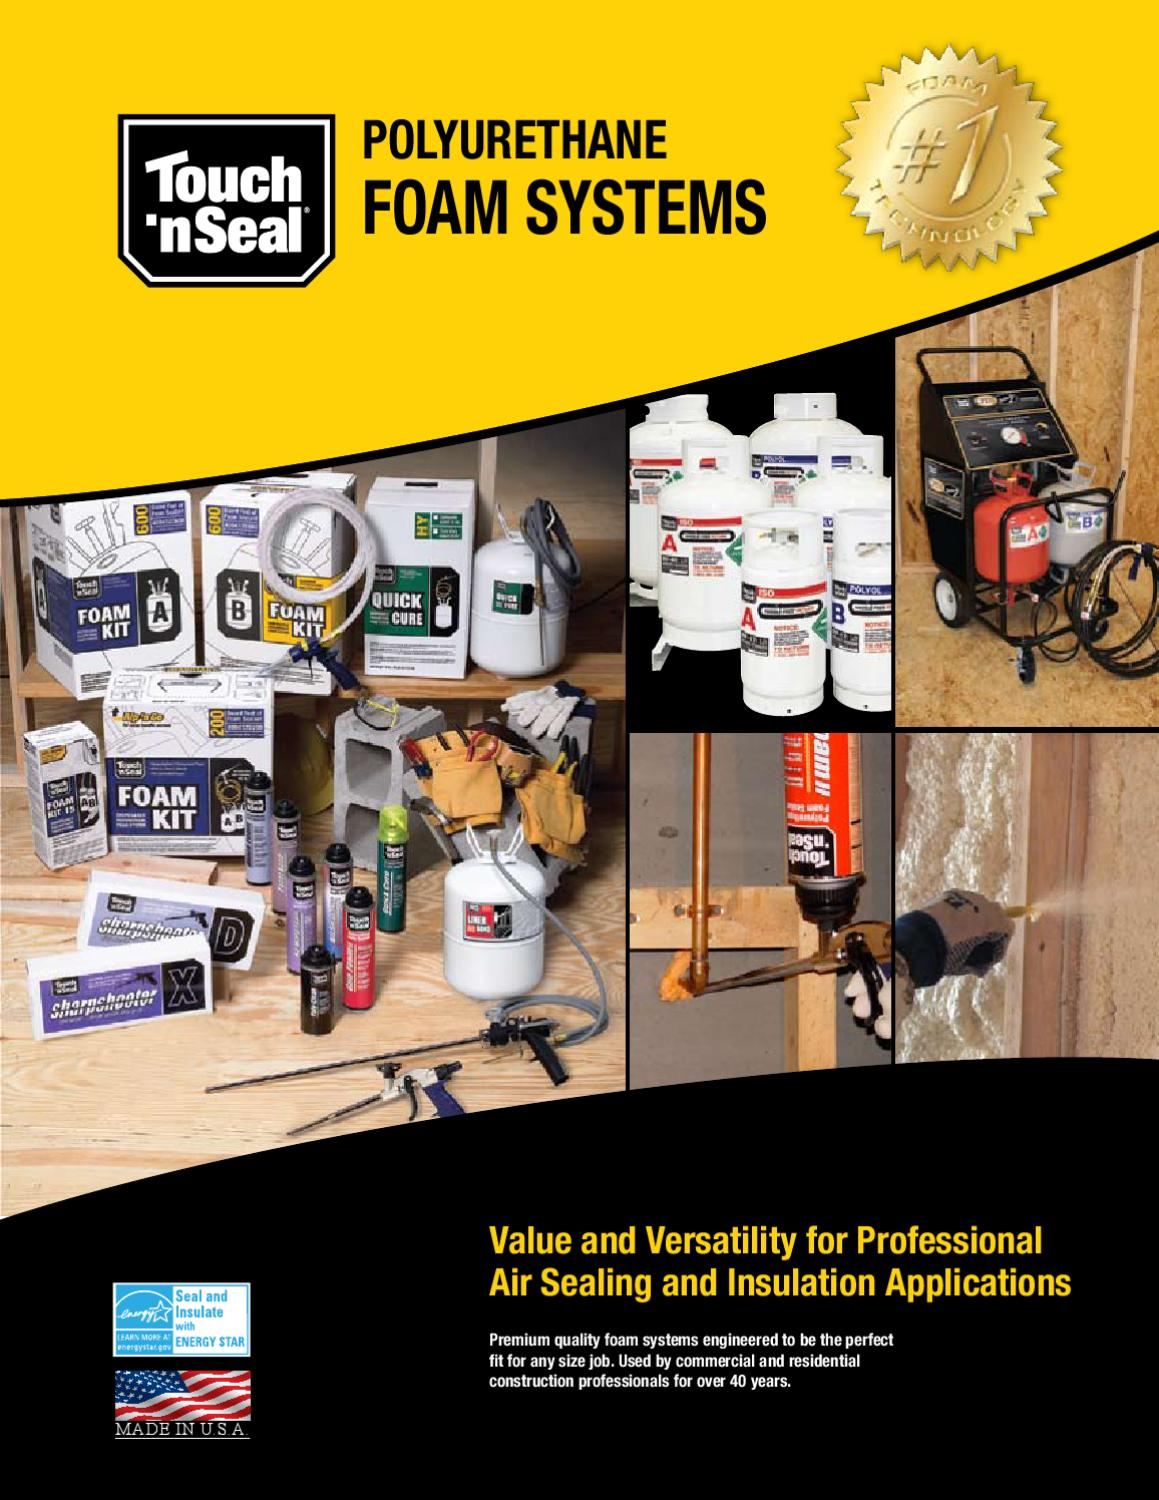 Touch N Foam Professional Touch 39n Seal Polyurethane Foam Systems By David Brown Issuu